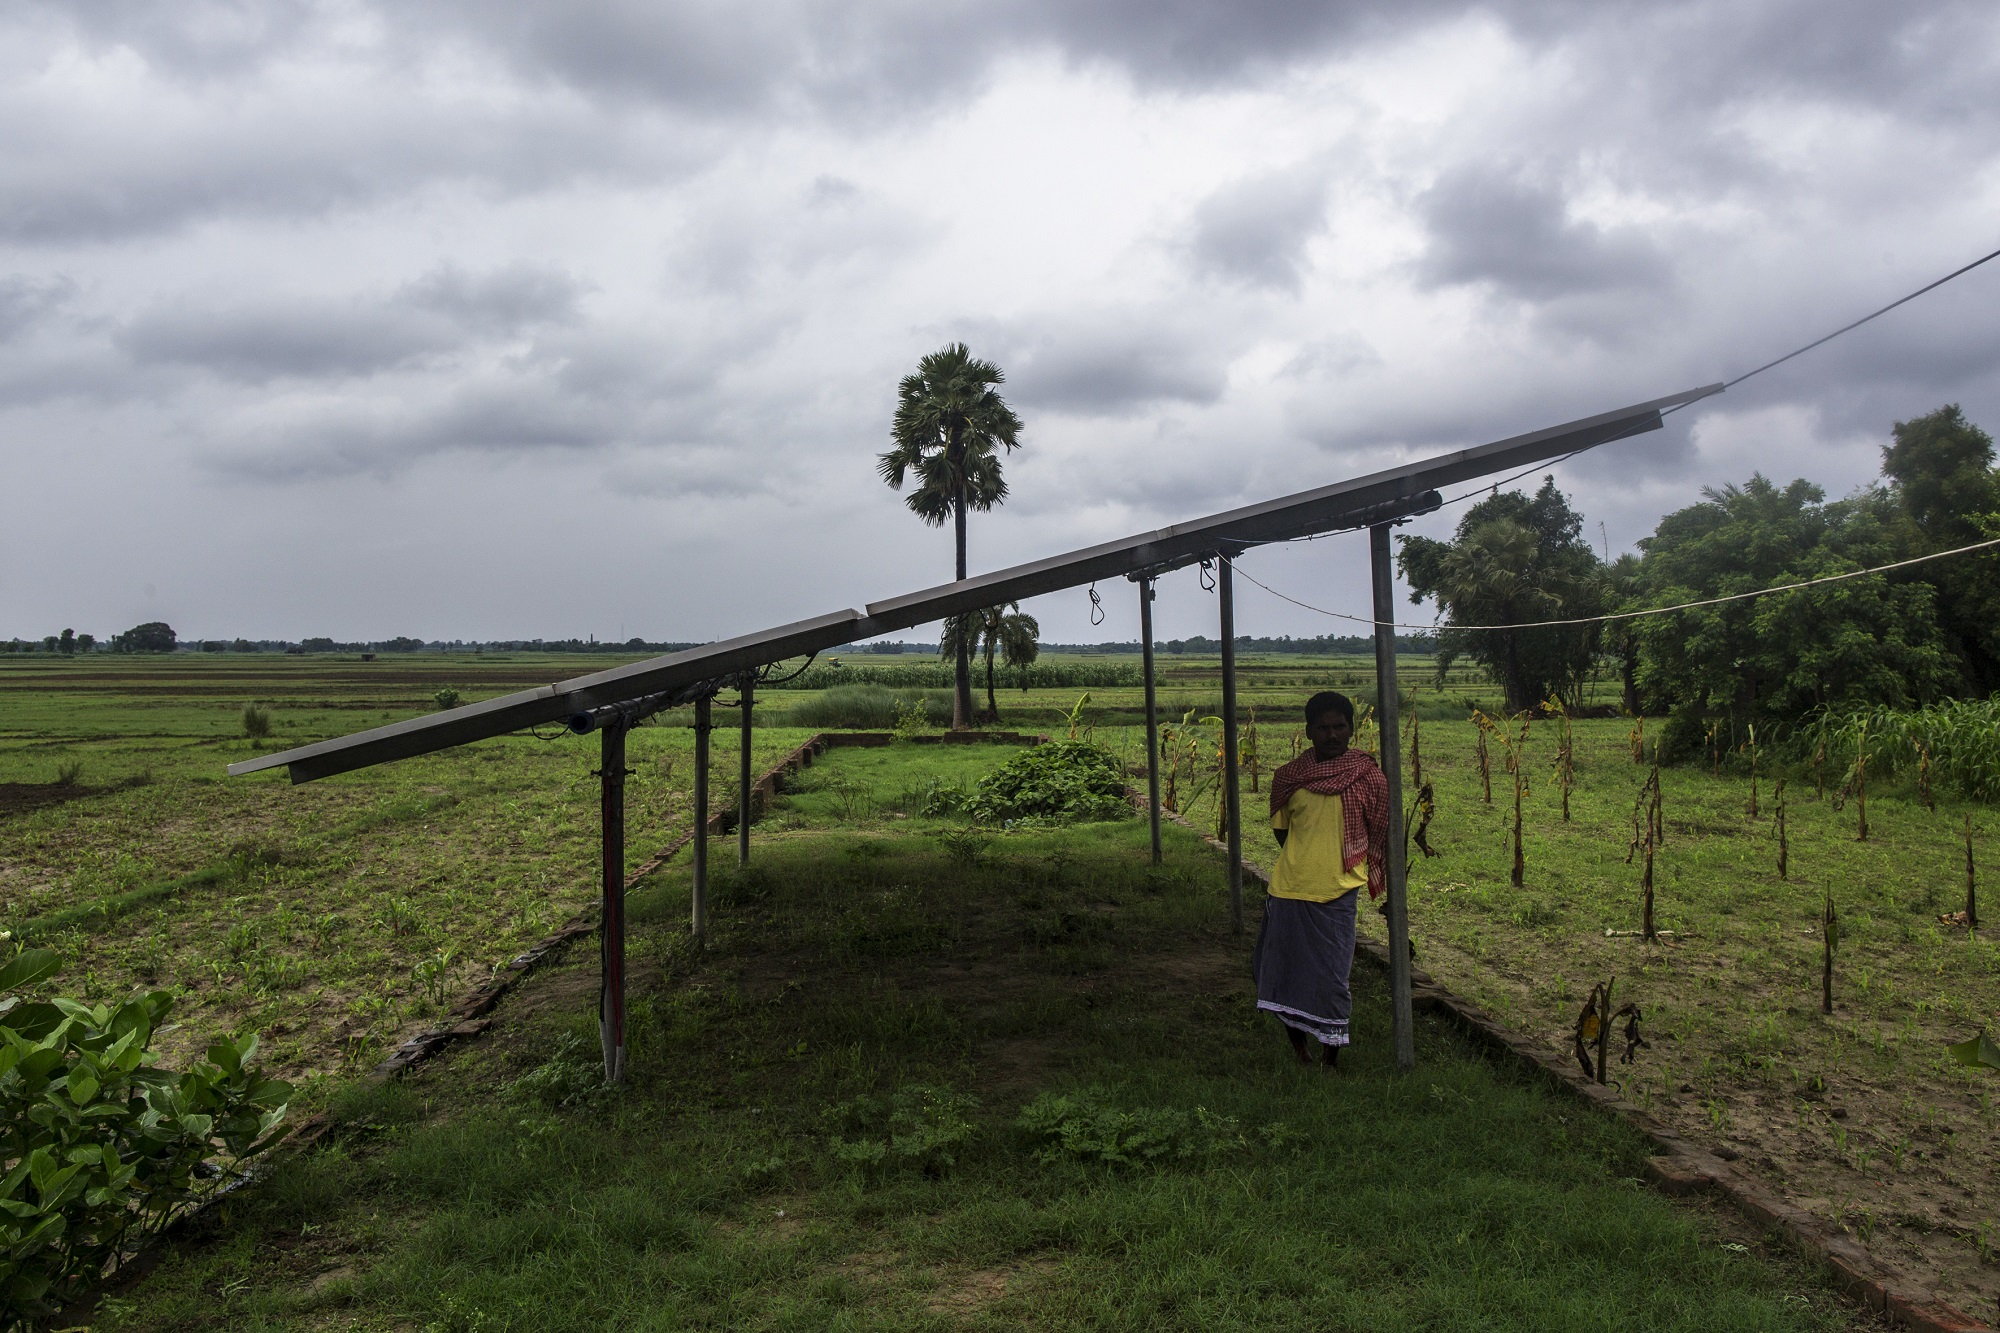 A man stands under solar panels, part of a solar power microgrid owned and operated by Veddis Solars Pvt., in the village of Kayam, Bihar, India, on Friday, July 10, 2015. While Prime Minister Narendra Modi's ambition has led billionaires such as Foxconn Technology Group's Terry Gou to pledge investment, the question remains whether the 750 million Indians living on less than $2 per day can afford or will embrace green energy. Photographer: Prashanth Vishwanathan/Bloomberg